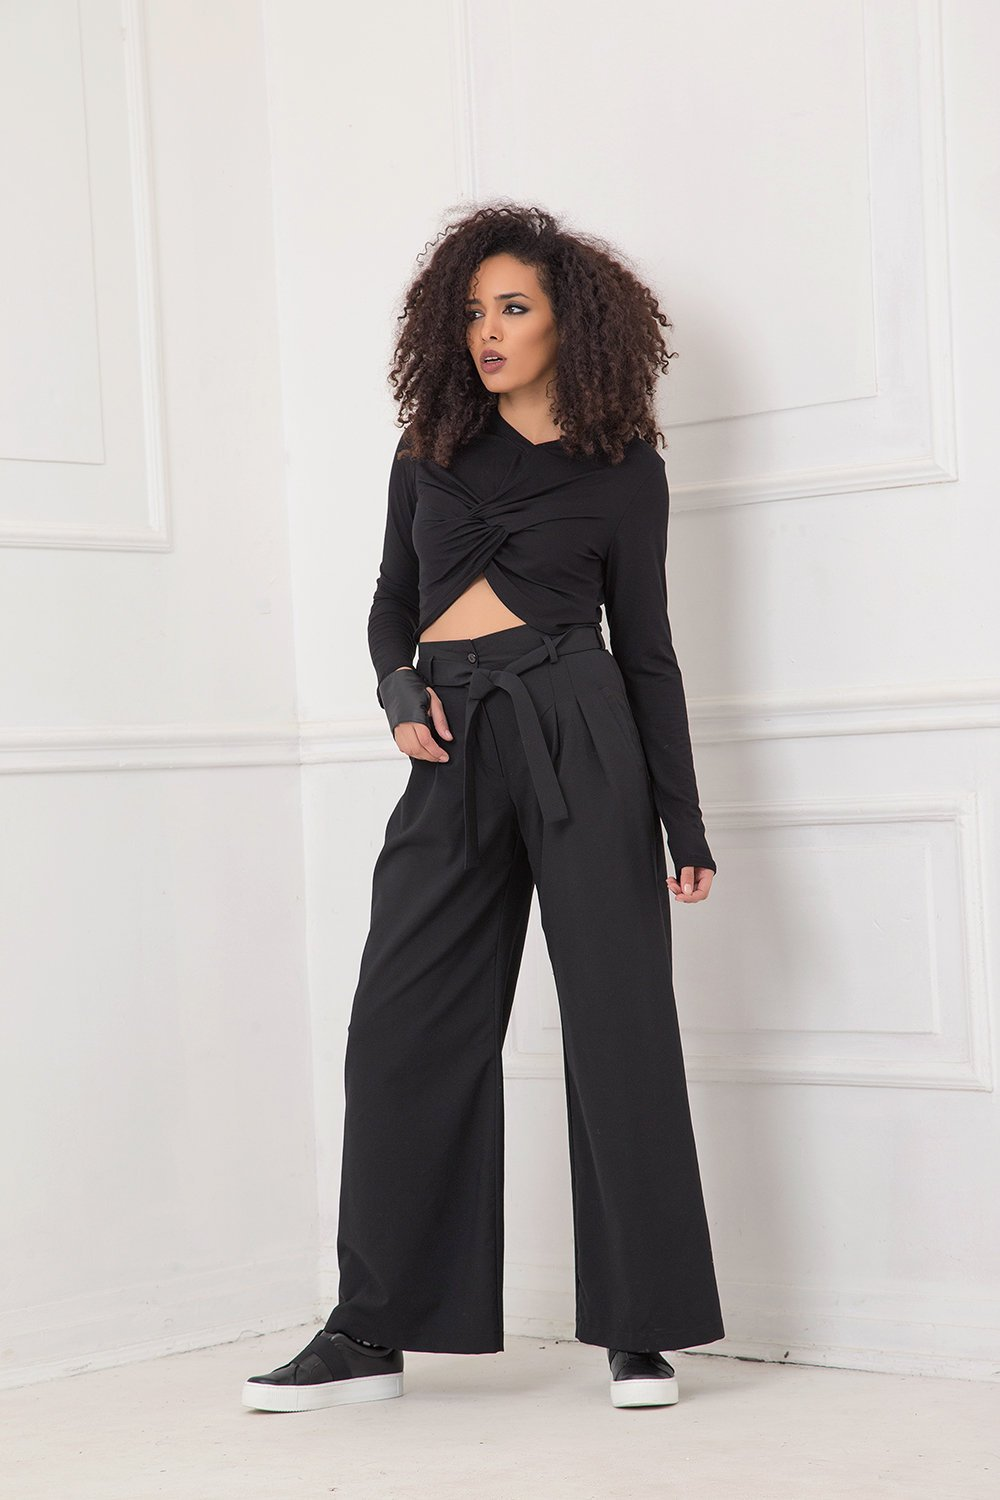 Pants For Women, Black Pants, Wool Pants, Plus Size Clothing, Wide Leg Pants, Wool Clothing, Japanese Clothing, Palazzo Pants, High Waist